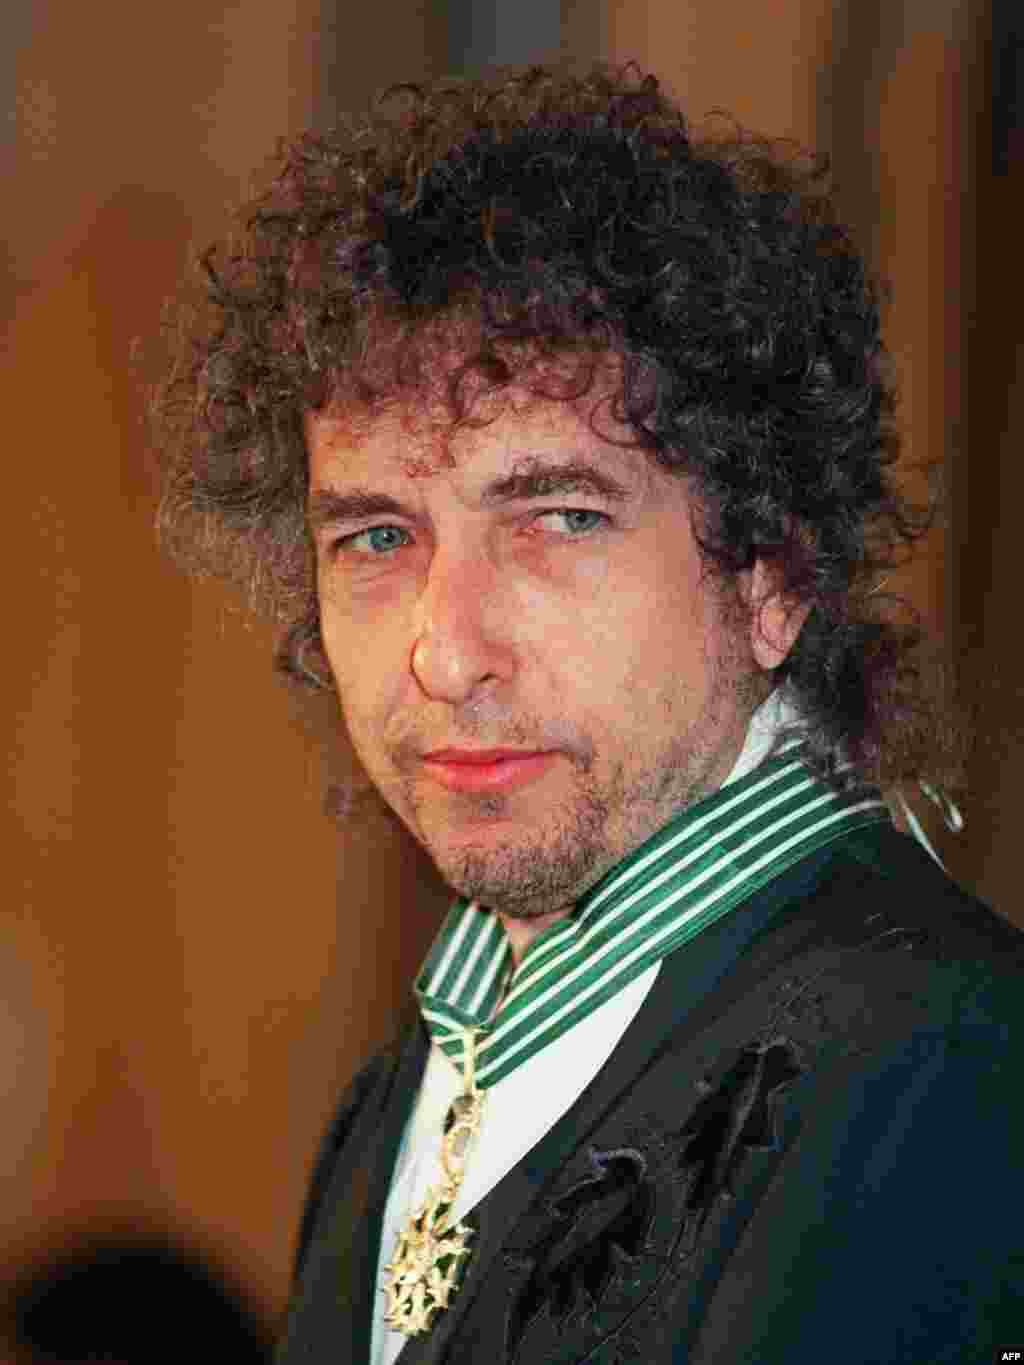 Dylan in January 1990 after receiving France's Commandership of Arts and Literature.